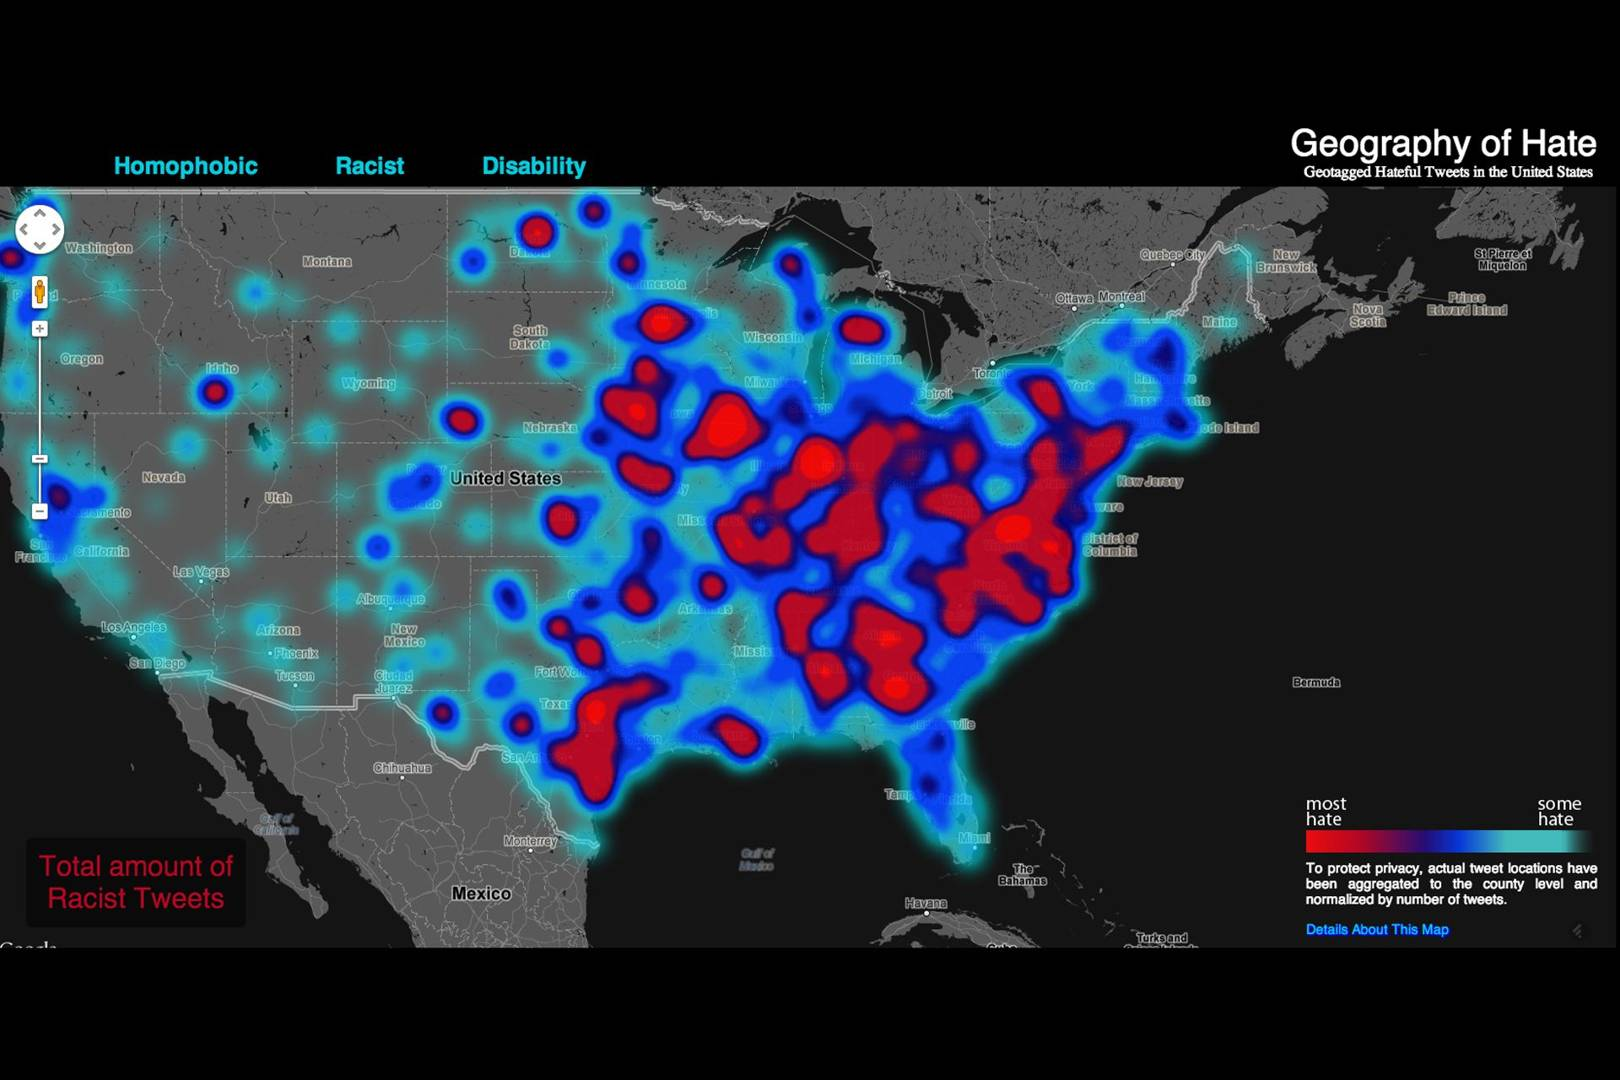 Hate Map Plots Homophobia And Racism Across The US WIRED UK - Racism map in the us